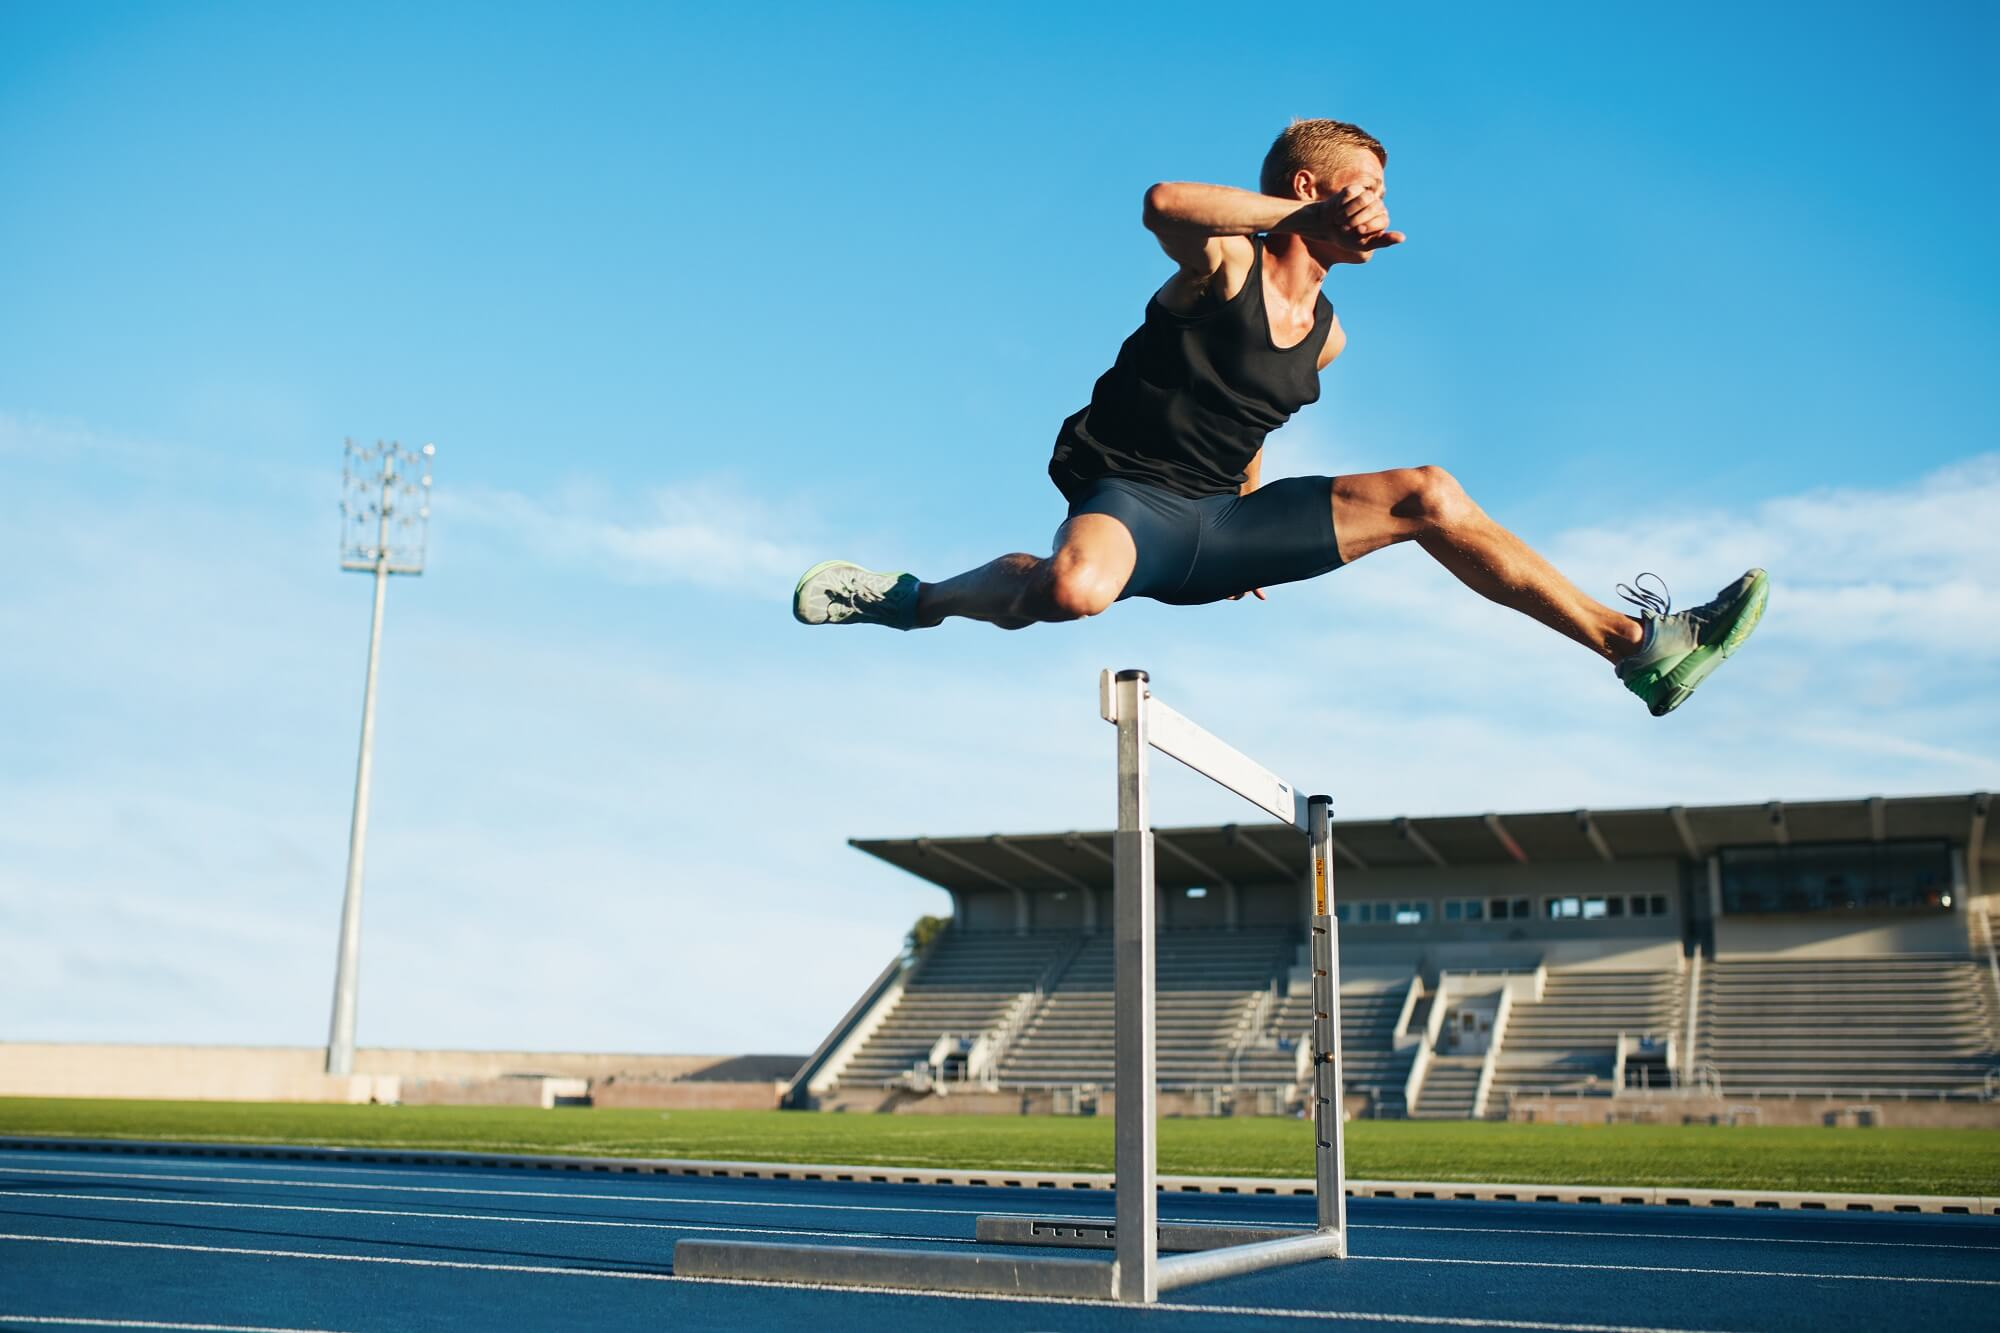 Man jumping over a hurdle